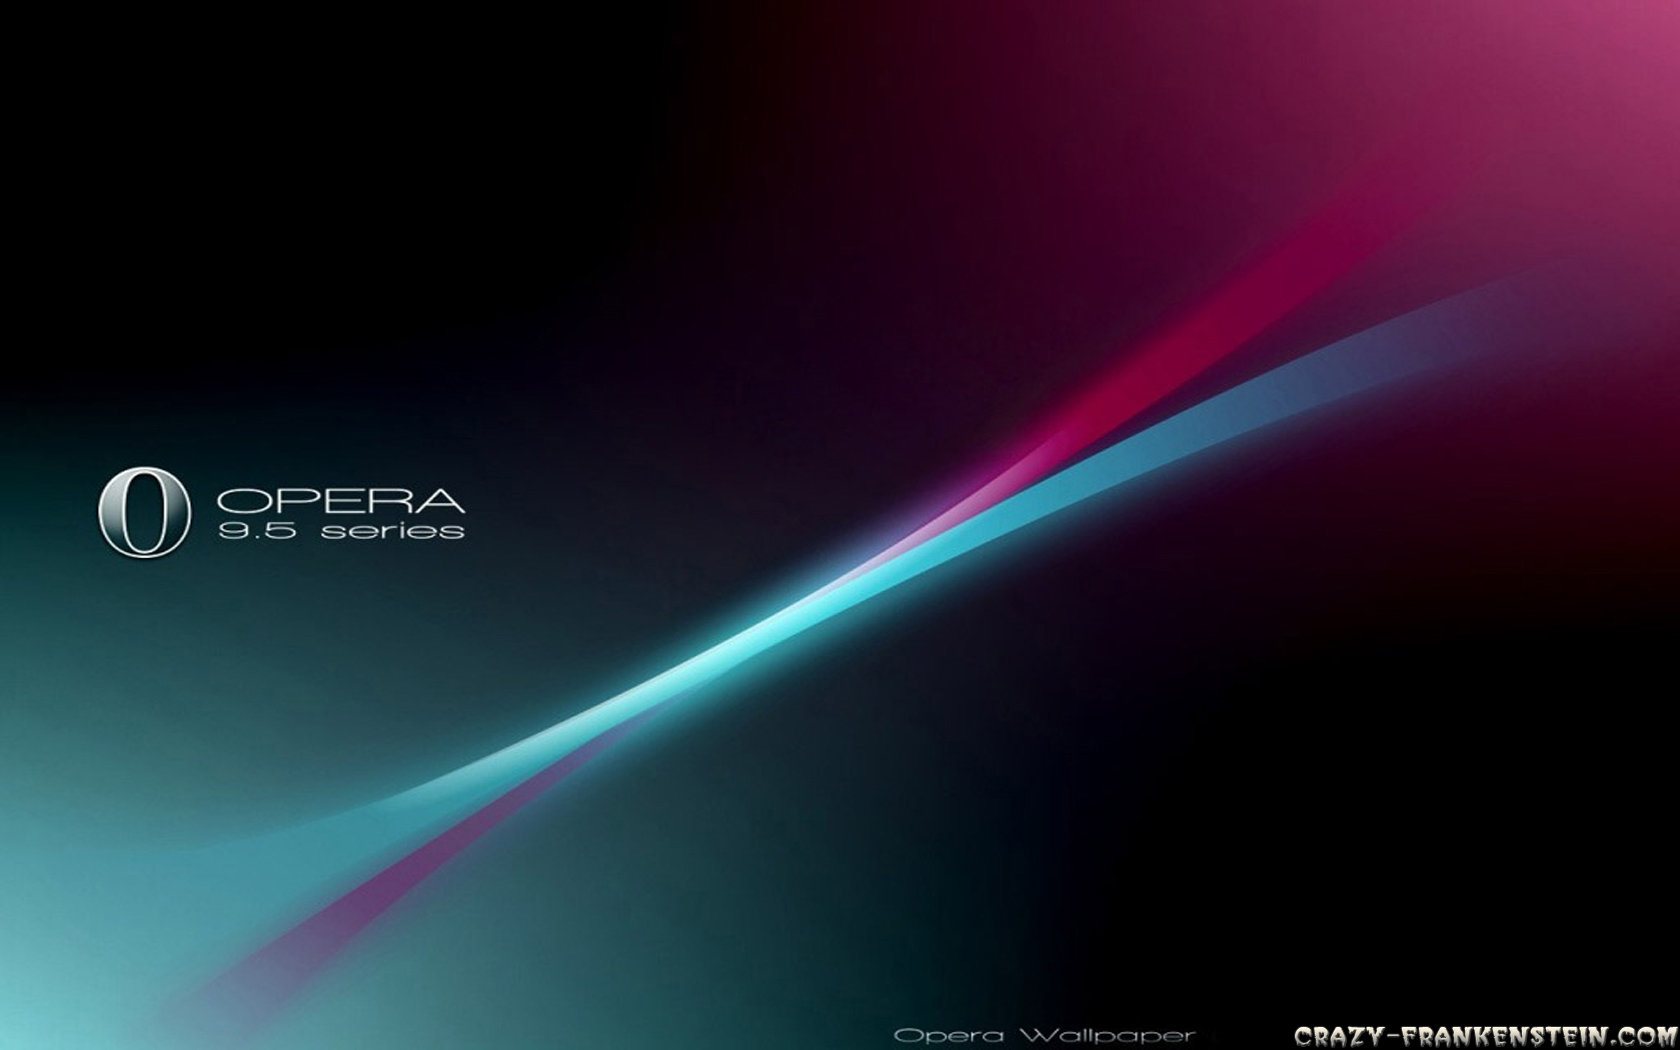 Opera Wallpapers Hd Widescreen Images